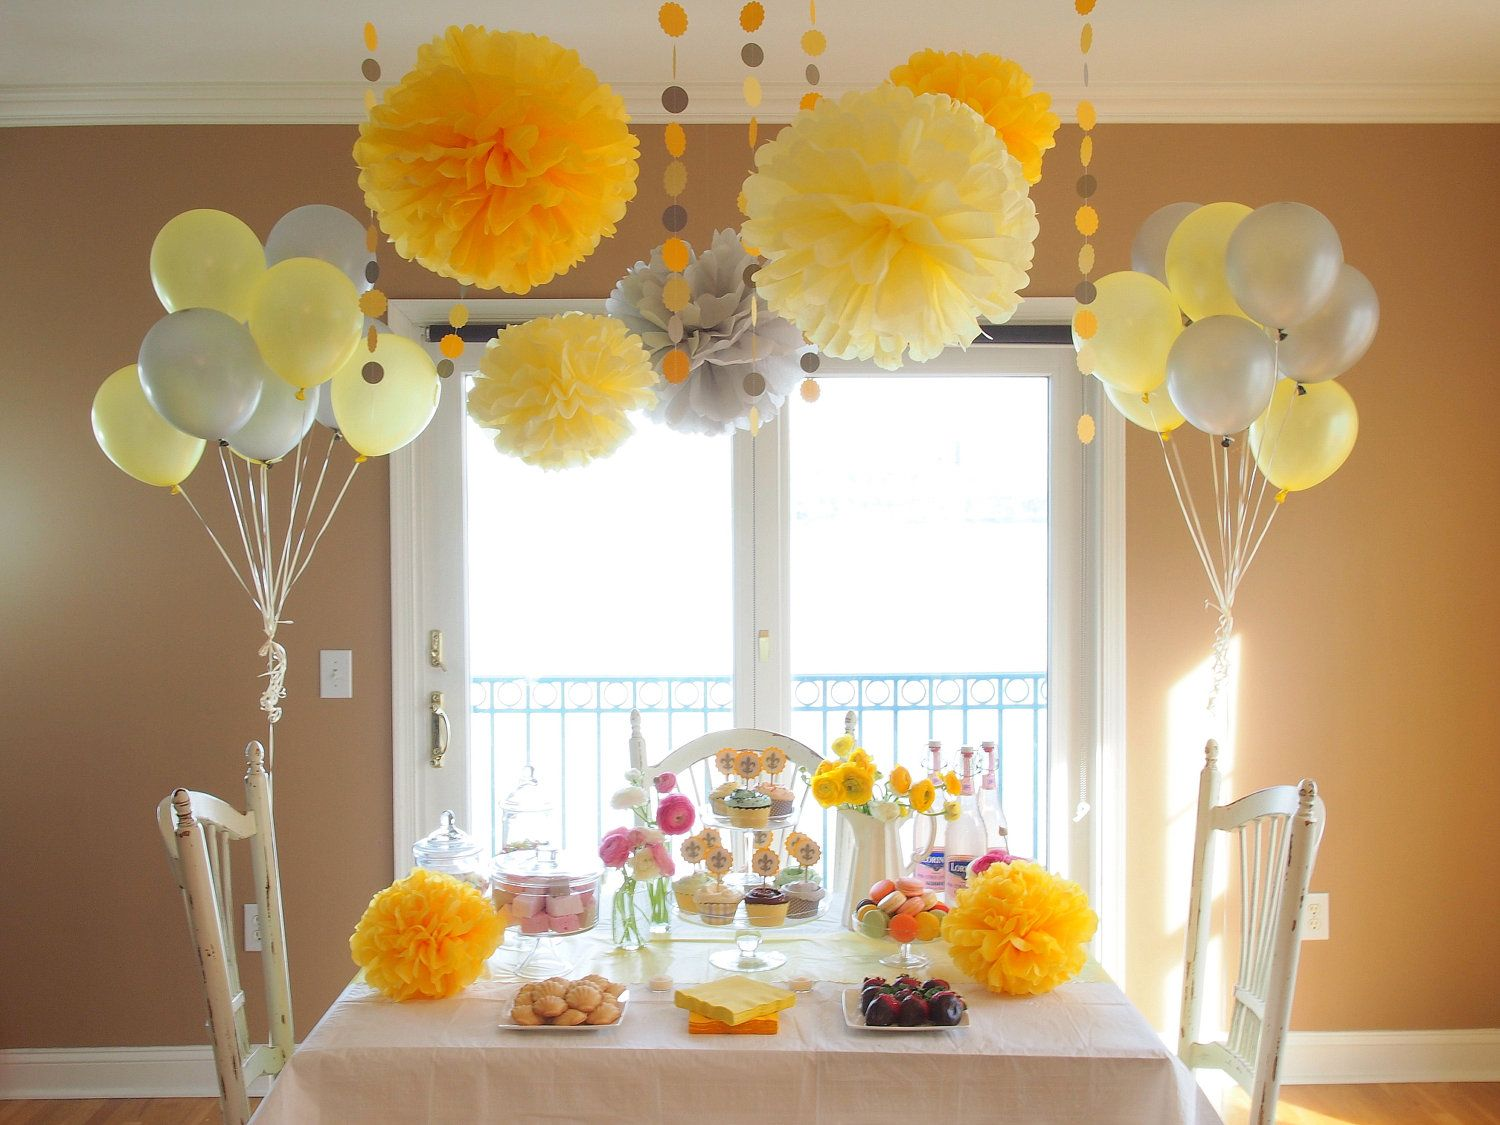 Pin By Rachel Tuck On Baby Shower Ideas Baby Shower Yellow Yellow Baby Shower Decorations Baby Shower Decorations Uk